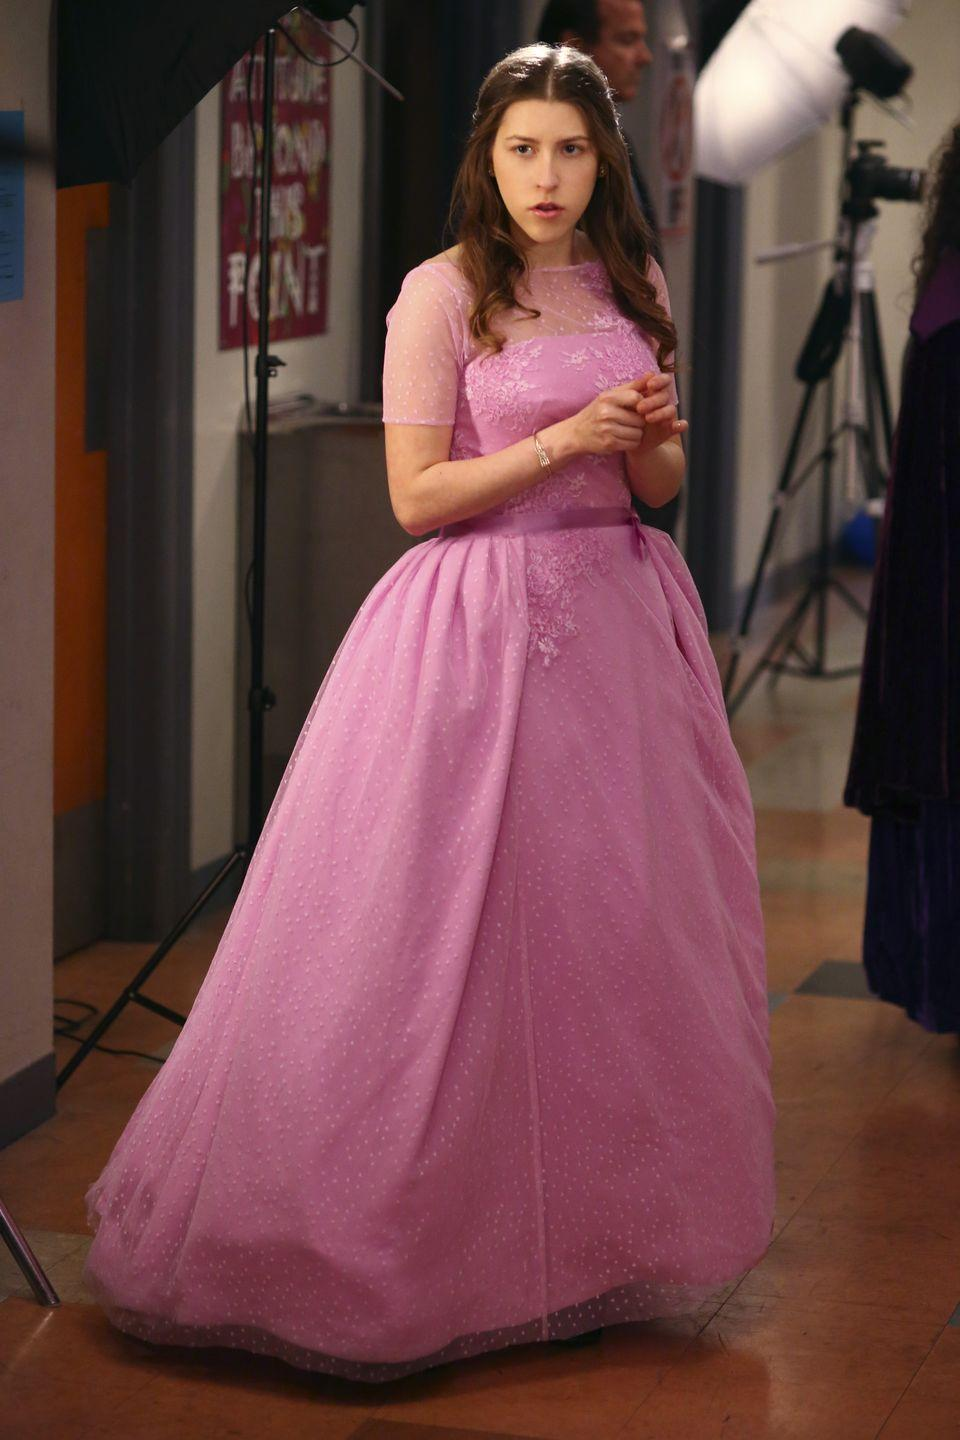 "<p>A faulty cheese machine prevented Sue from attending prom, but before the fiasco, she was ready for the dance in a sweet bubblegum pink ball gown. </p><p><a class=""link rapid-noclick-resp"" href=""https://www.amazon.com/Middle-Complete-First-Season/dp/B004FS1ZRA?tag=syn-yahoo-20&ascsubtag=%5Bartid%7C10063.g.36197518%5Bsrc%7Cyahoo-us"" rel=""nofollow noopener"" target=""_blank"" data-ylk=""slk:STREAM NOW"">STREAM NOW</a></p>"